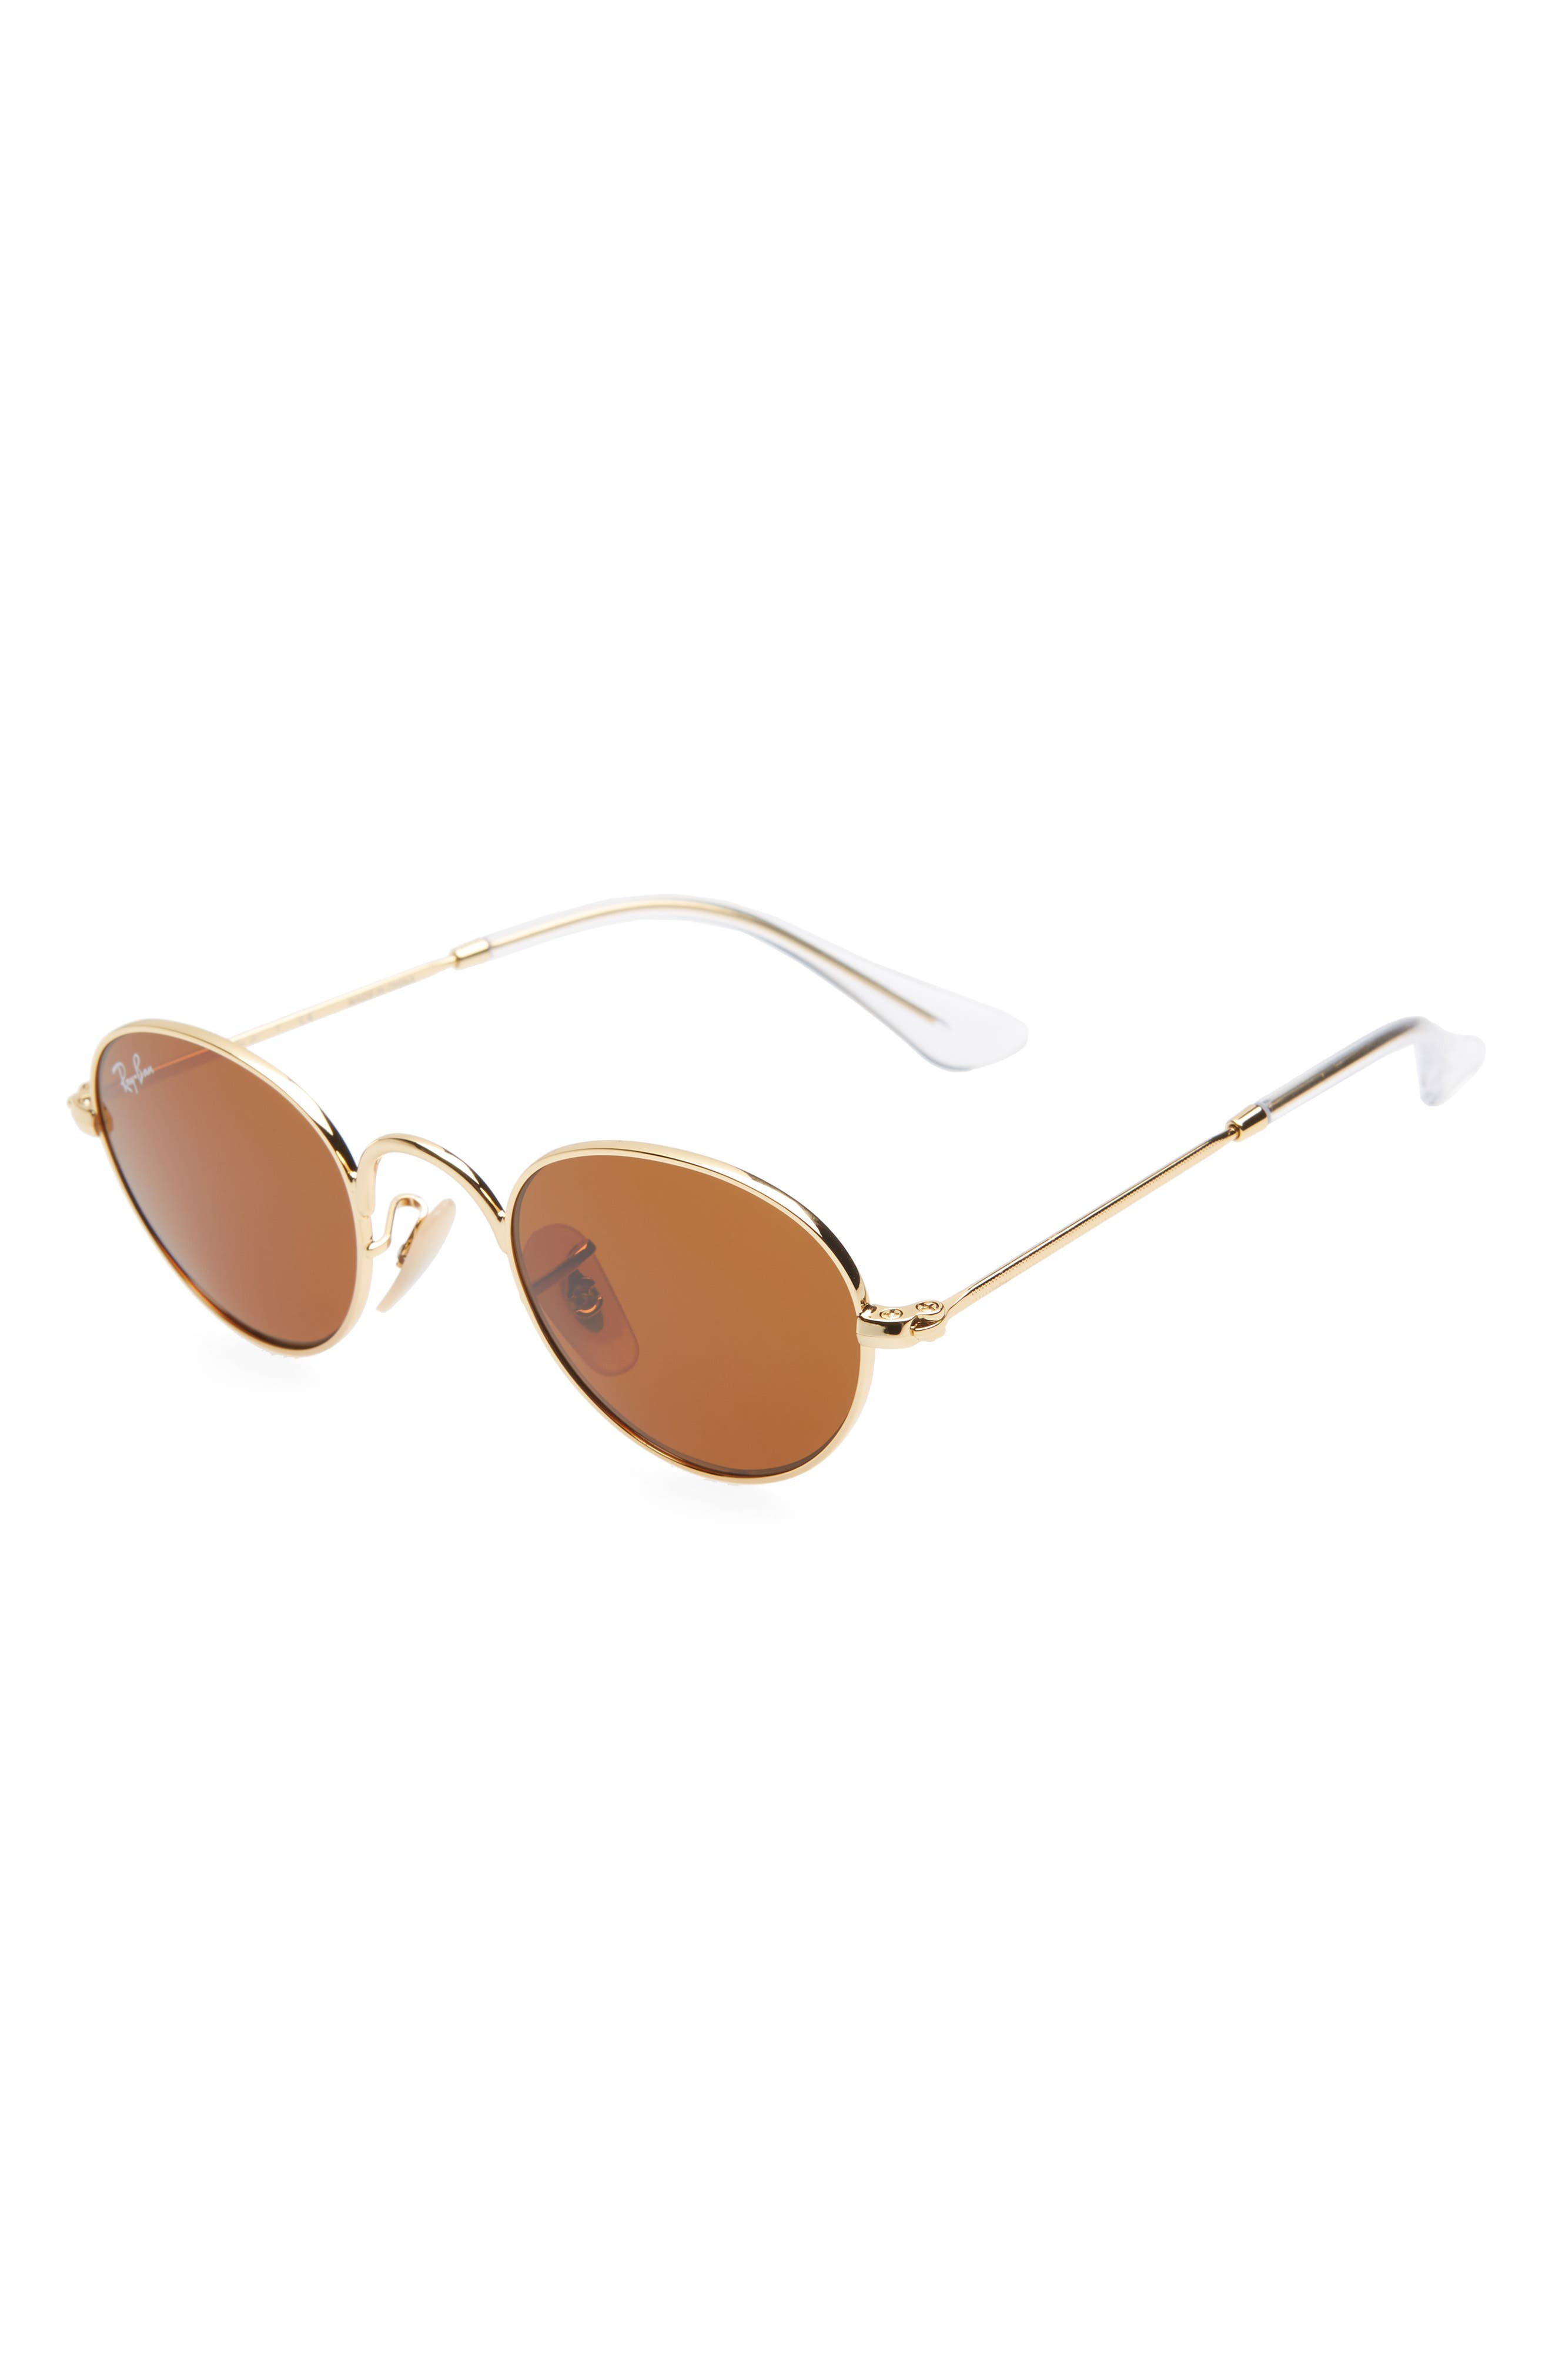 Lennon Junior 40mm Round Sunglasses,                             Main thumbnail 1, color,                             GOLD/ BROWN SOLID